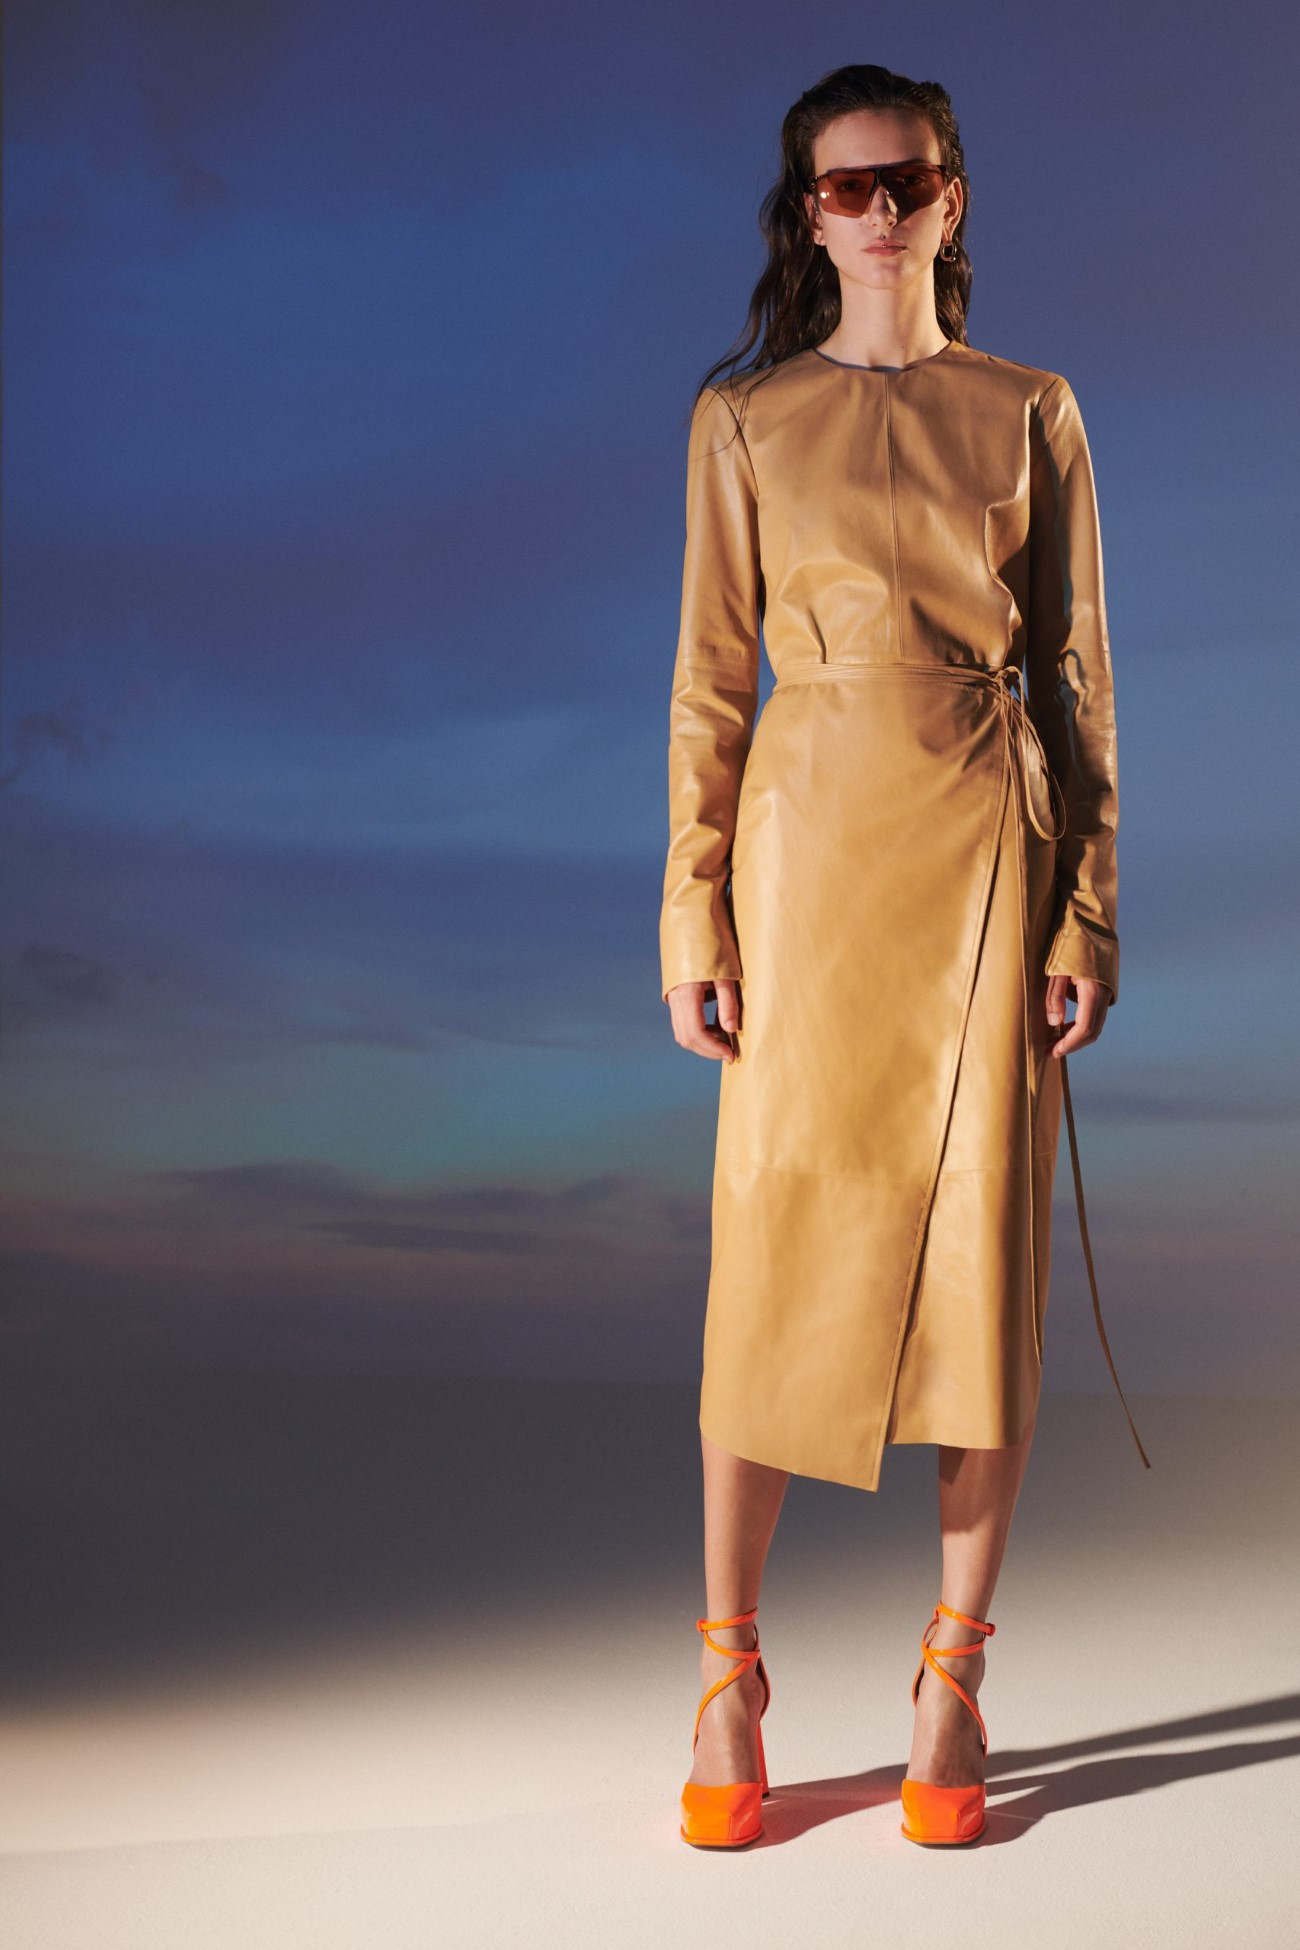 Sportmax Resort 2021 Lookbook